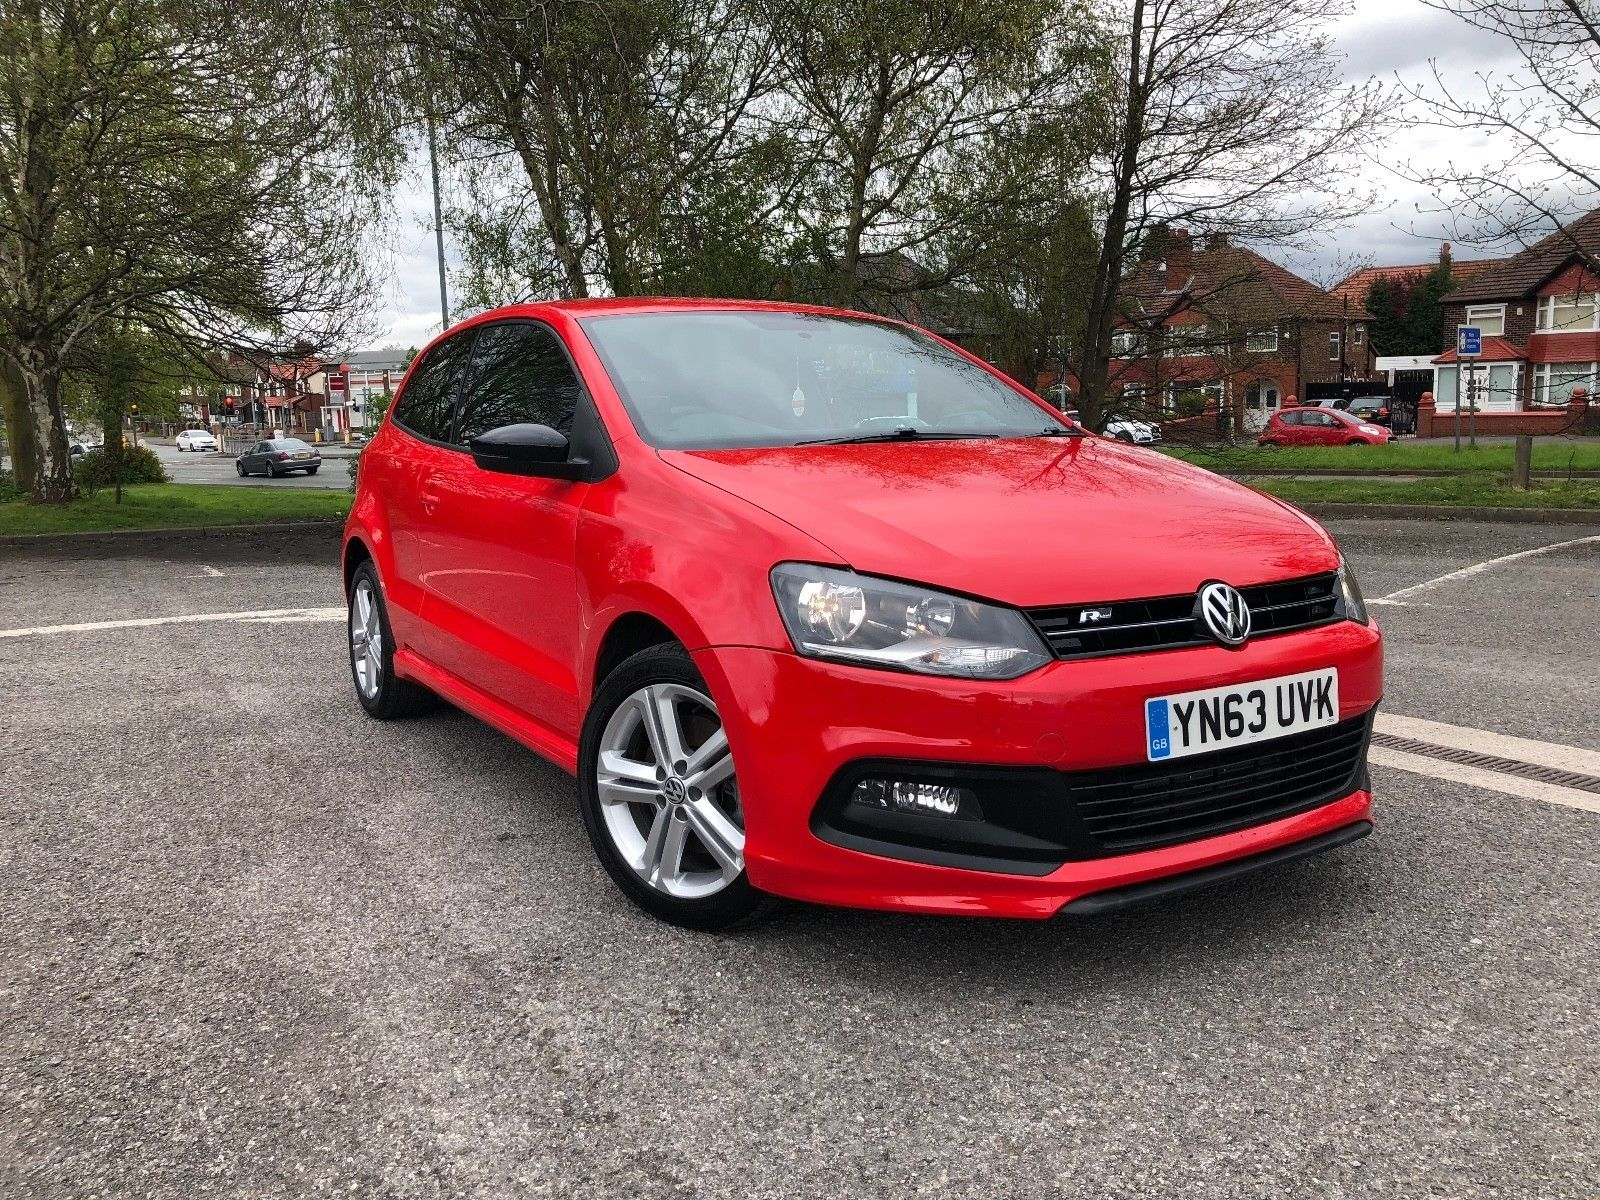 Ebay 2013 Vw Polo R Line 1 2 Tsi Red 3 Door Damaged Repaired